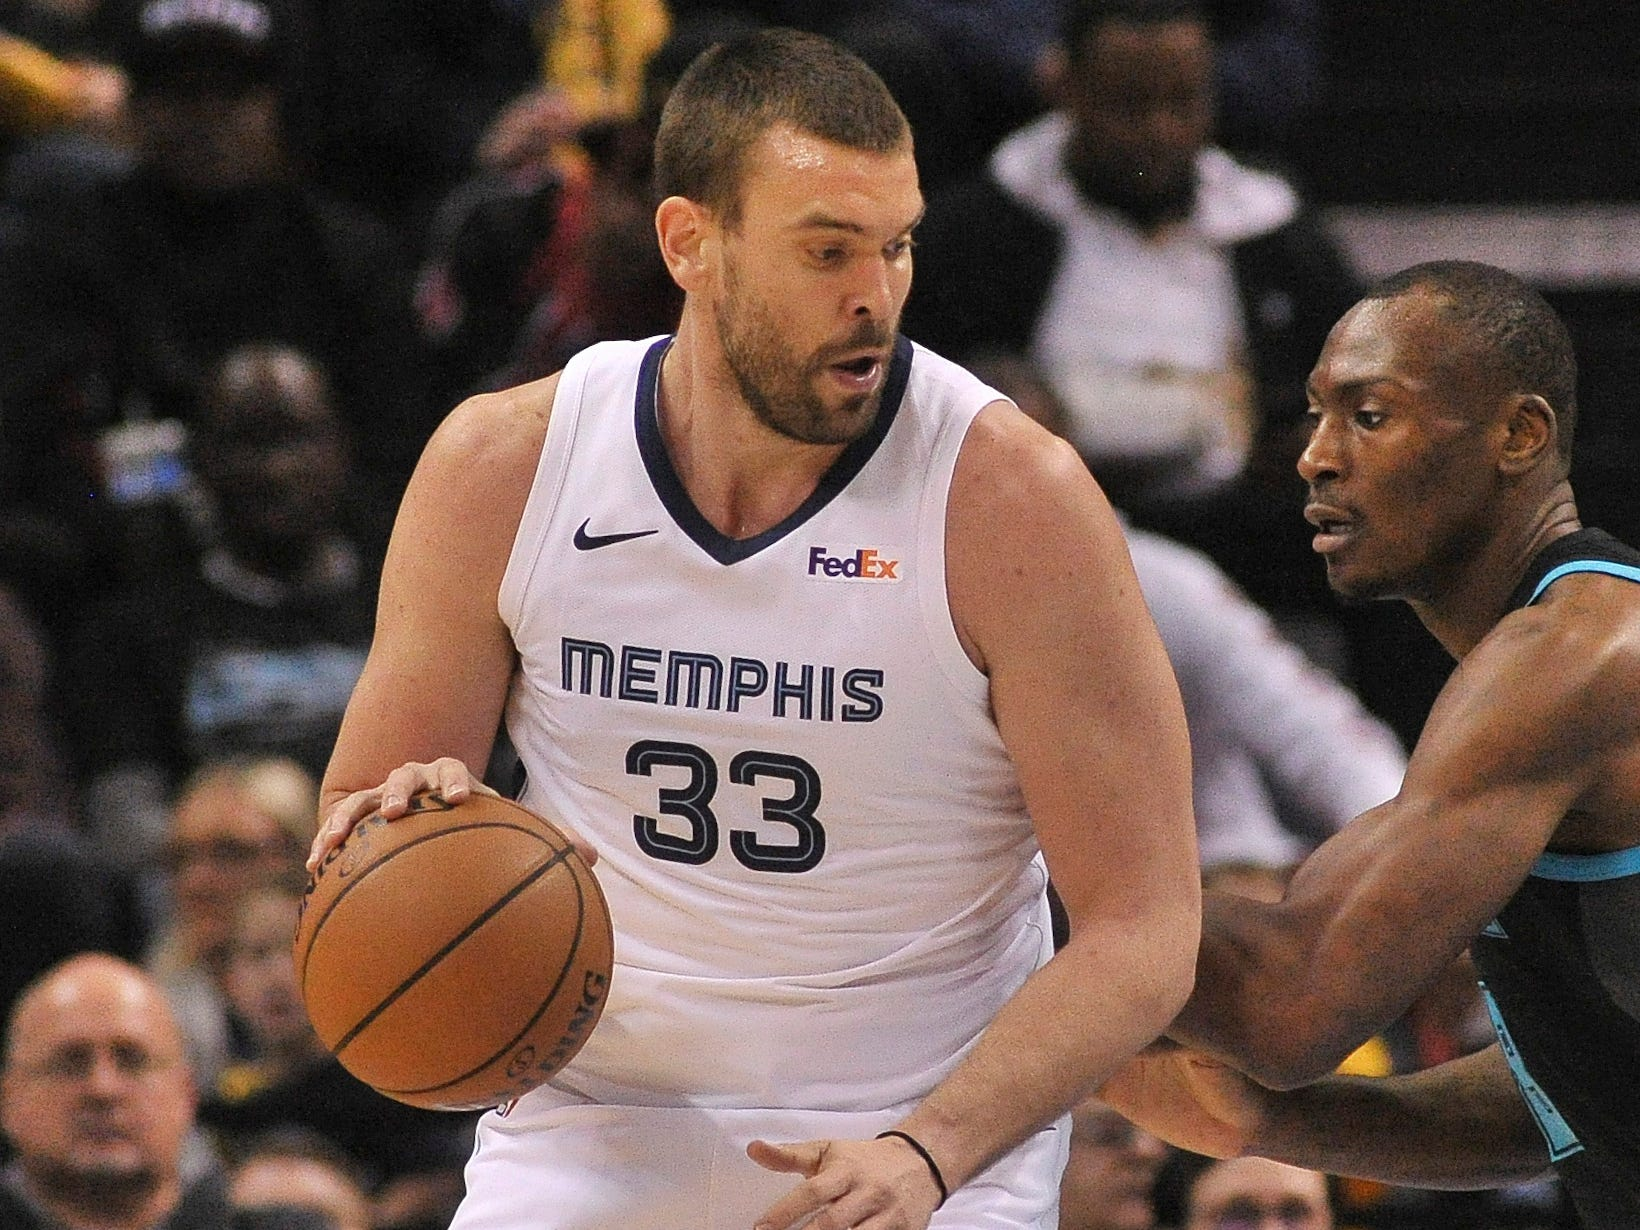 60. Marc Gasol, Grizzlies (Jan. 23): 22 points, 17 rebounds, 10 assists in 118-107 loss to Hornets.